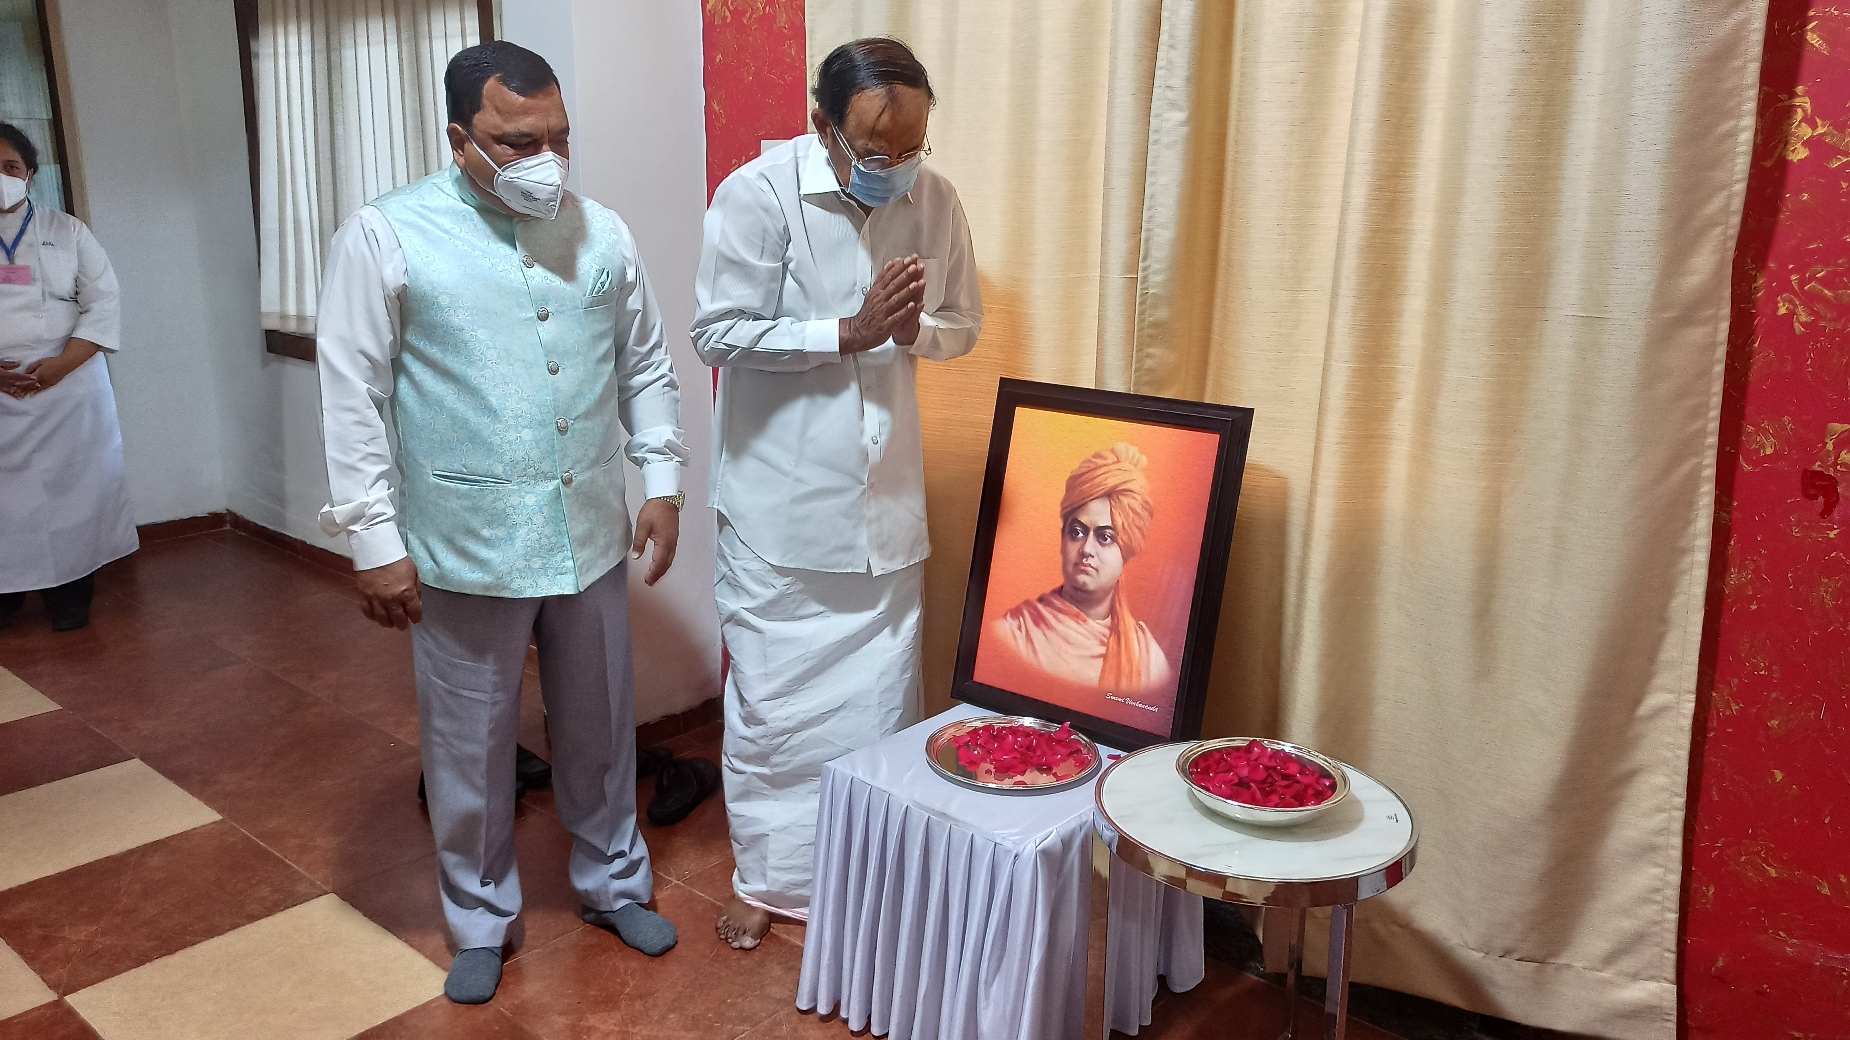 The Vice President, Shri M. Venkaiah Naidu paying floral tributes to Swami Vivekananda on the occasion of National Youth Day at the Institute of Hotel Management, Goa on 12th January 2021